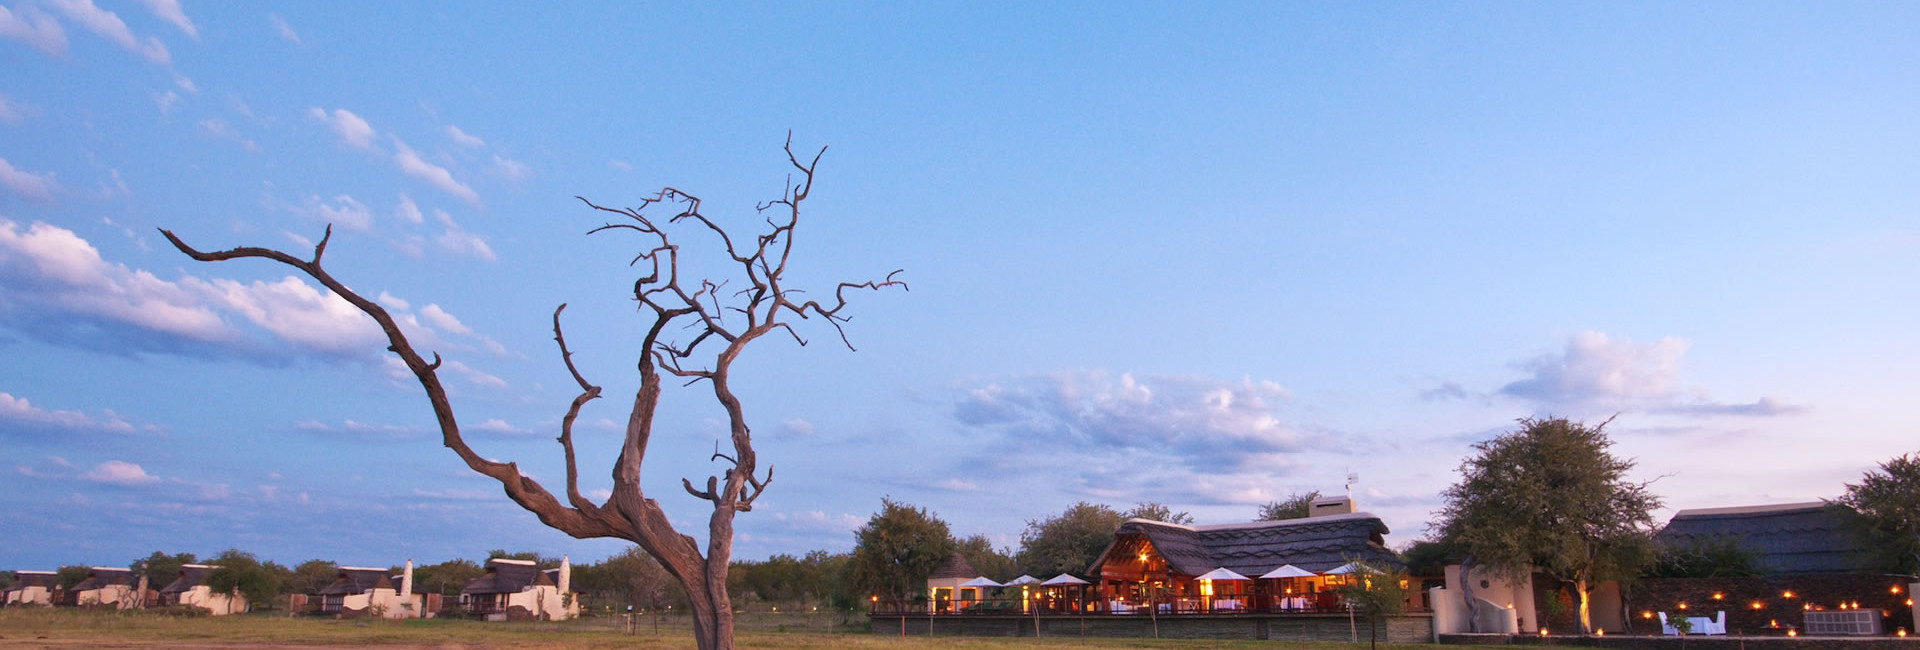 The crystal clear skies of the unblemished African wilderness